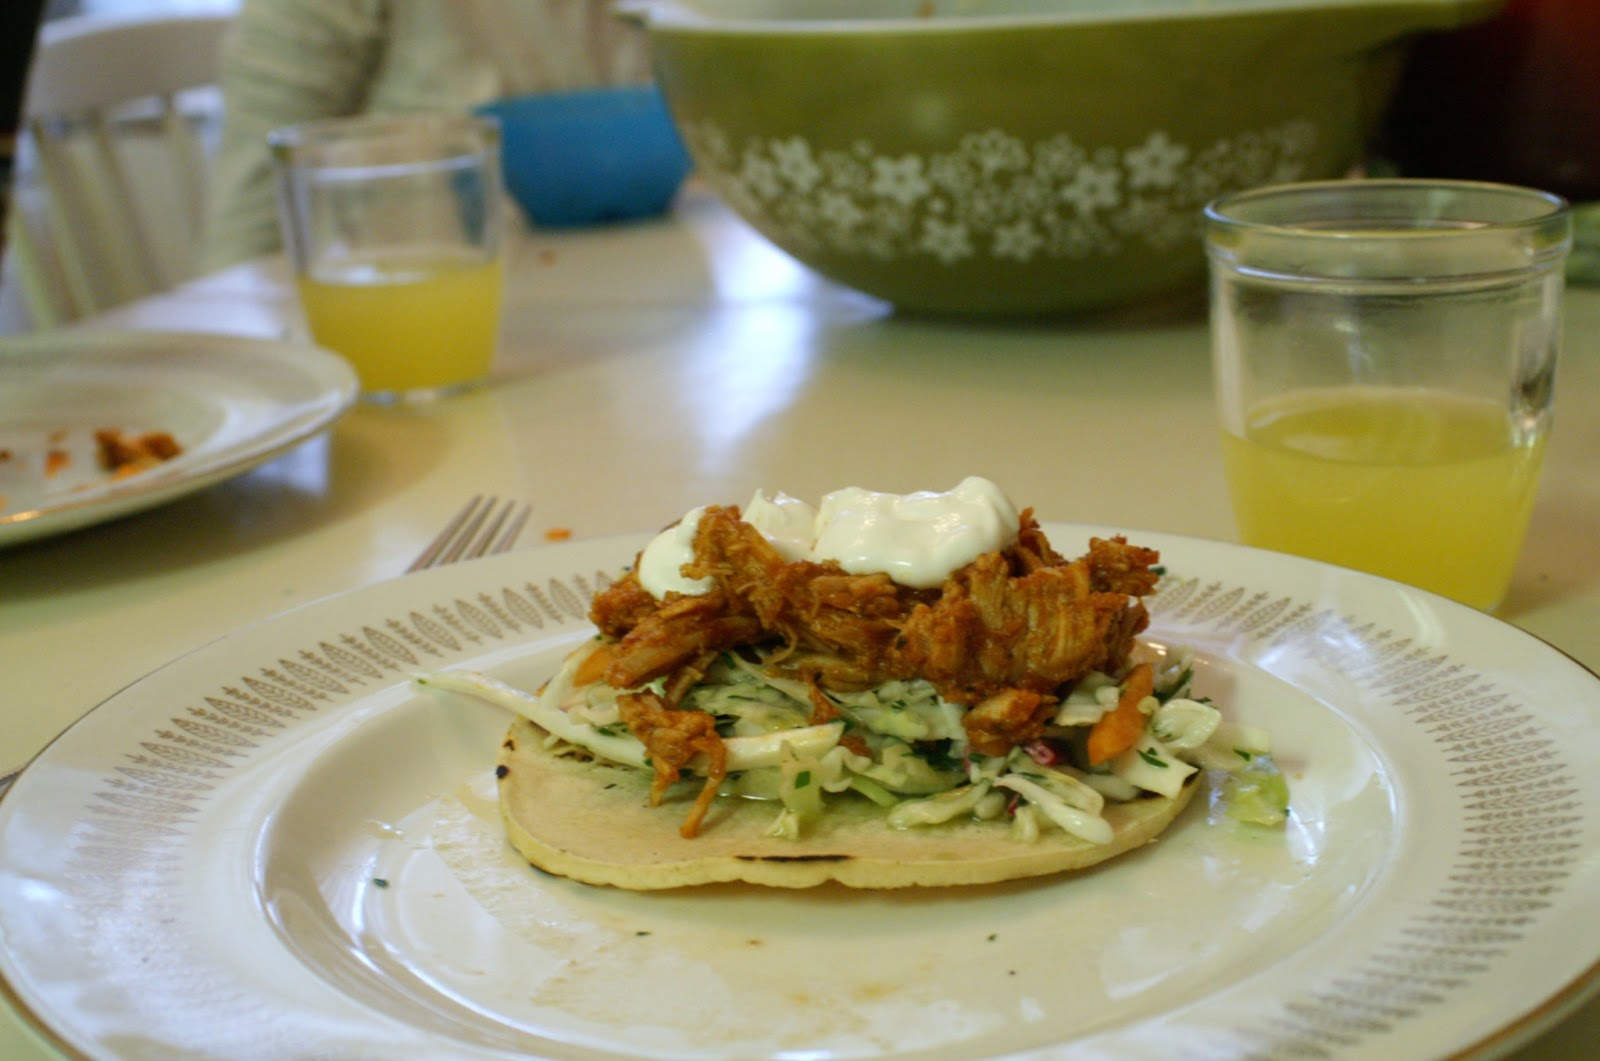 Graceful Oven: Pulled Pork Tacos with Tangy Coleslaw